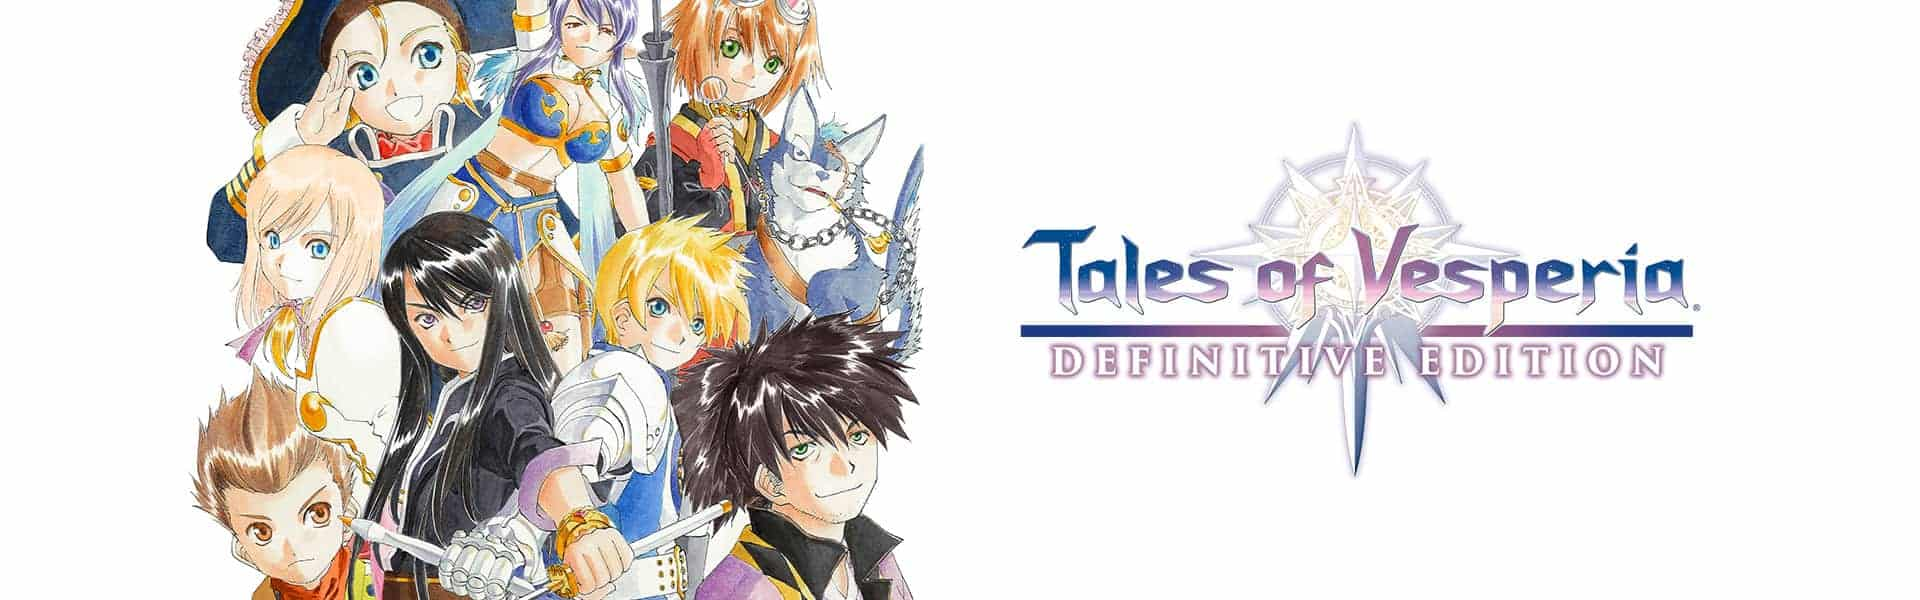 لعبة Tales of Vesperia: Definitive Edition